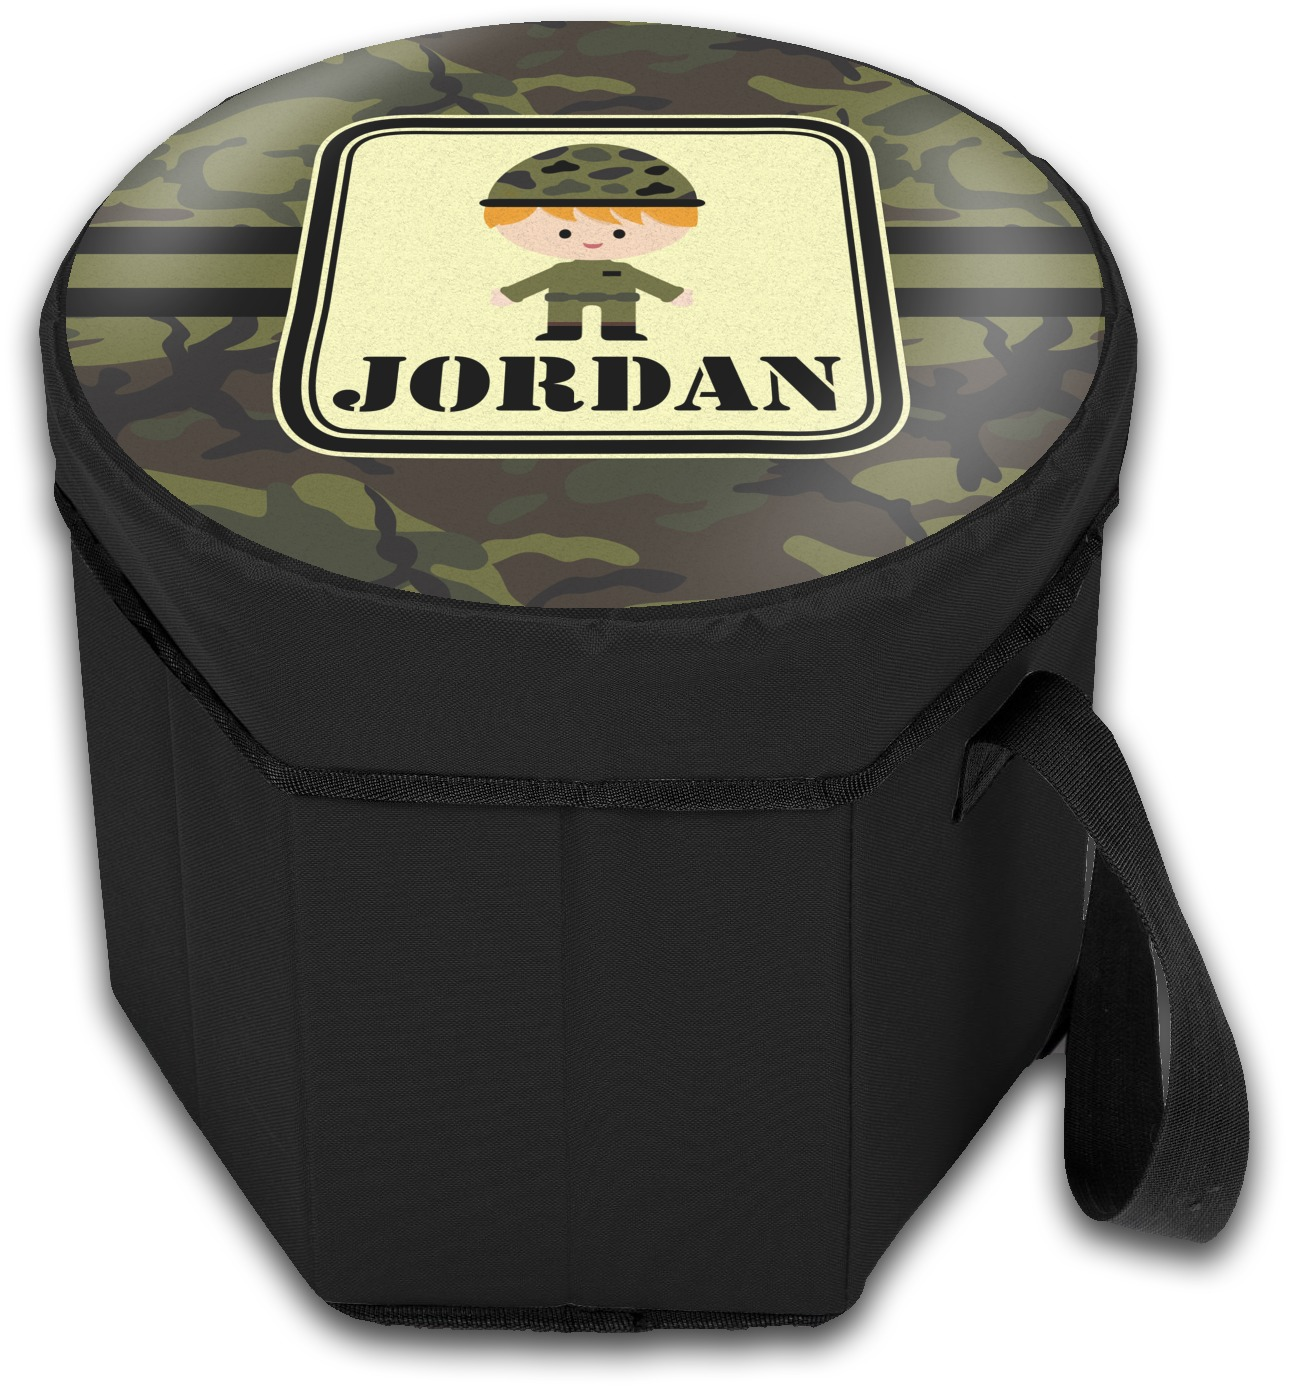 Green Camo Collapsible Cooler Amp Seat Personalized